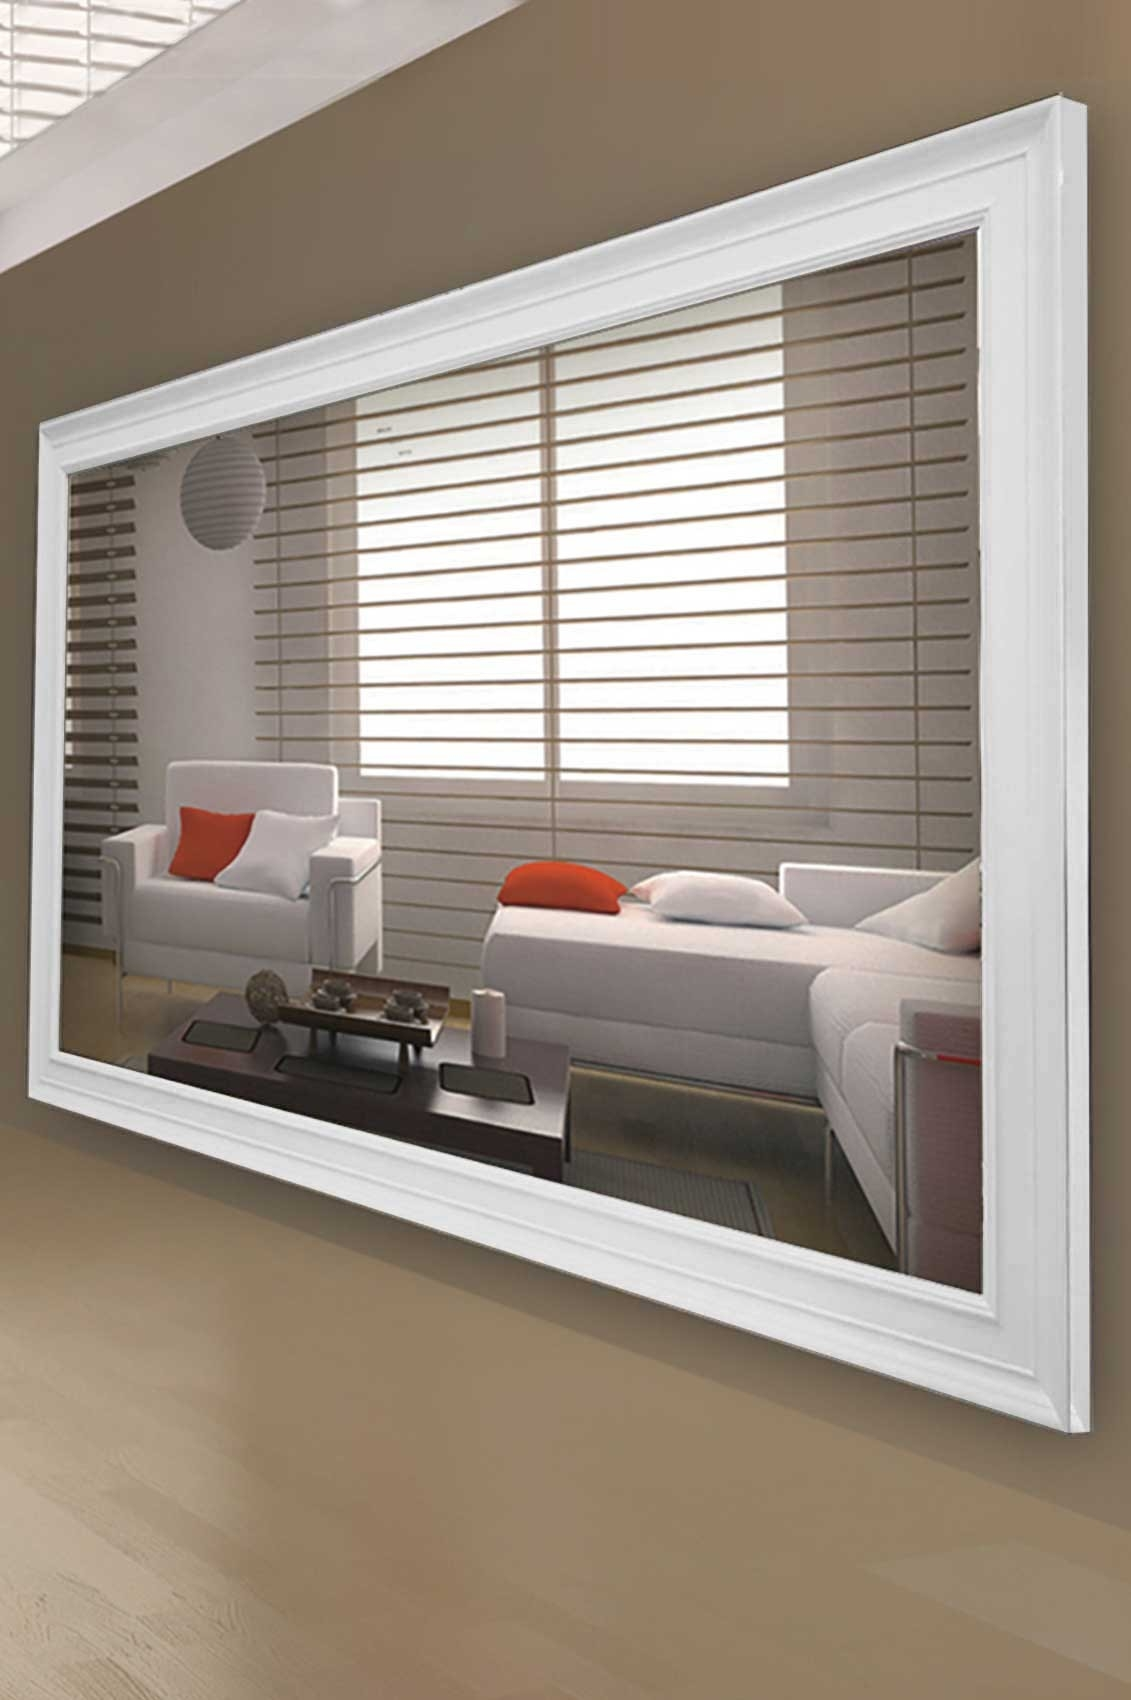 Contemporary Ideas Extra Large Wall Mirror Exclusive Inspiration Throughout Wall Mirrors Contemporary (Image 3 of 15)